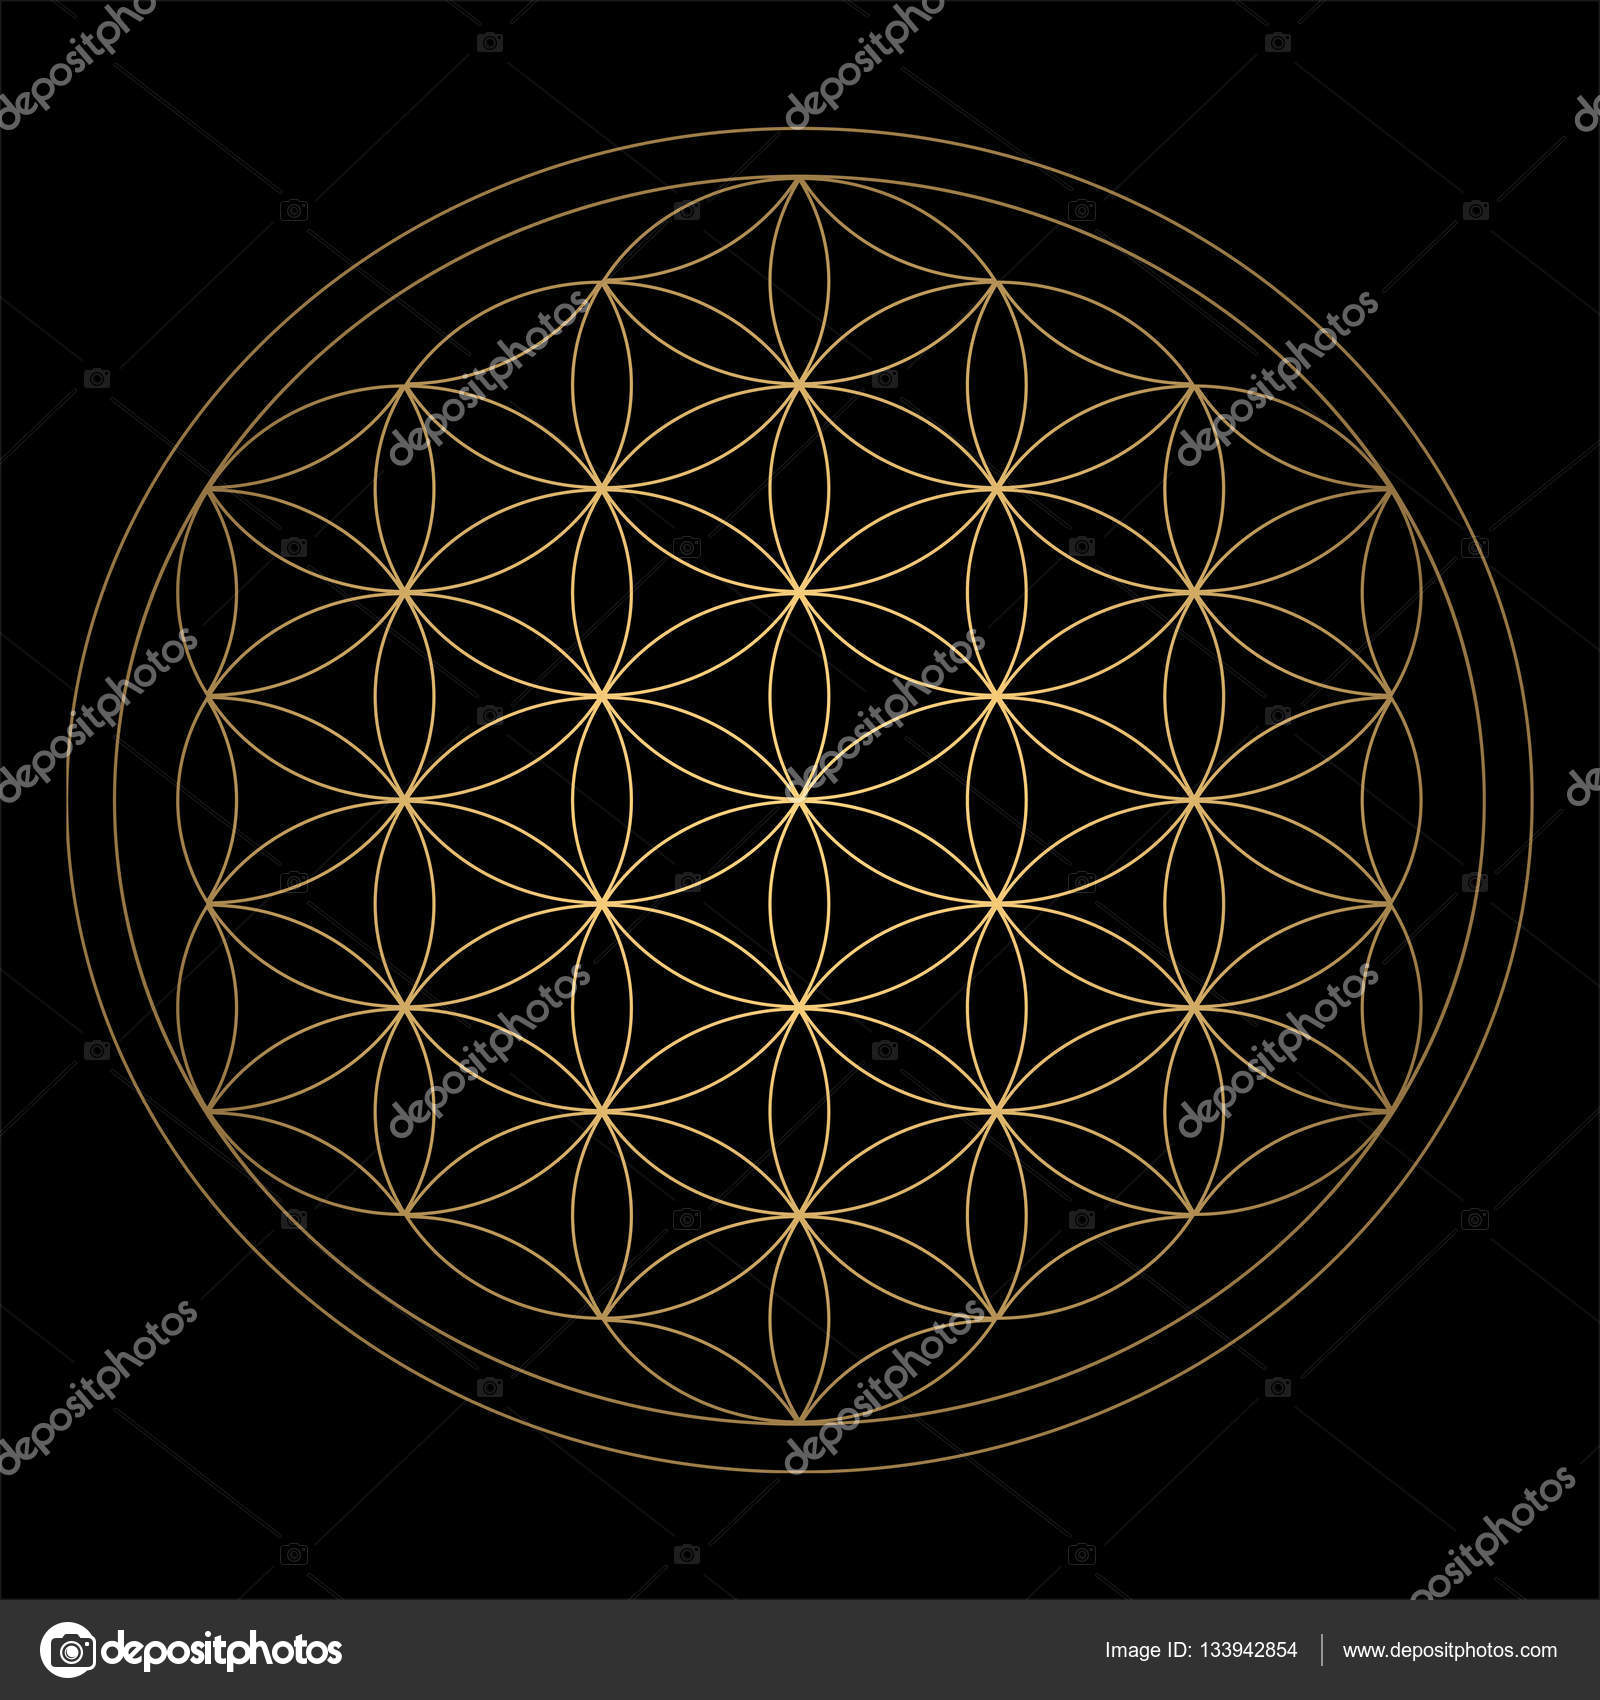 diagram by Athanasius Kircher, a 17th century German ...  |Ancient Sacred Geometry